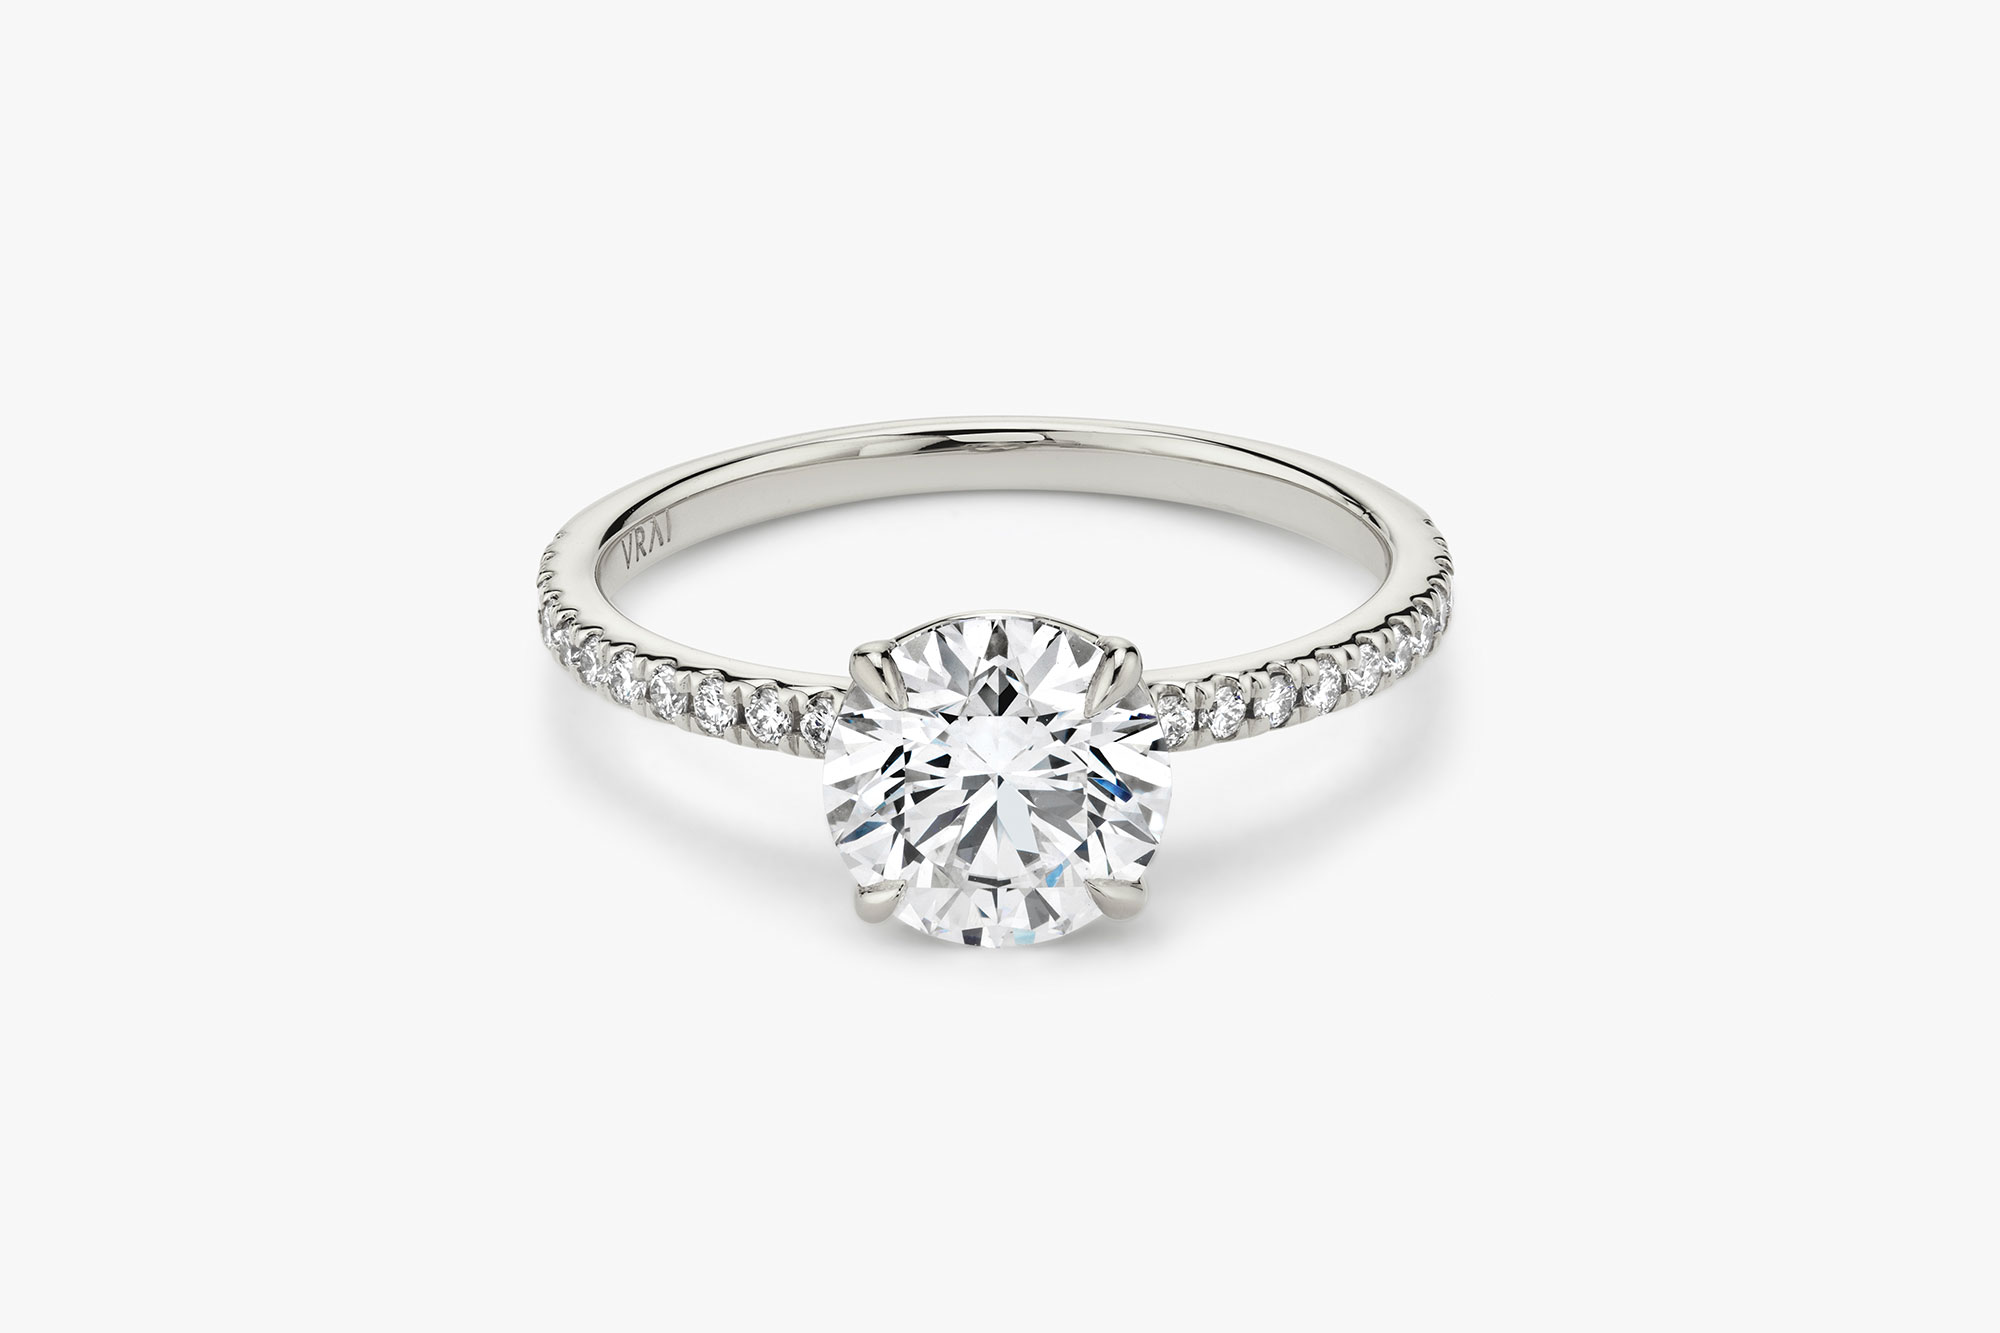 The Signature solitaire ring in 18k white gold with a round brilliant cut diamond and pavé band